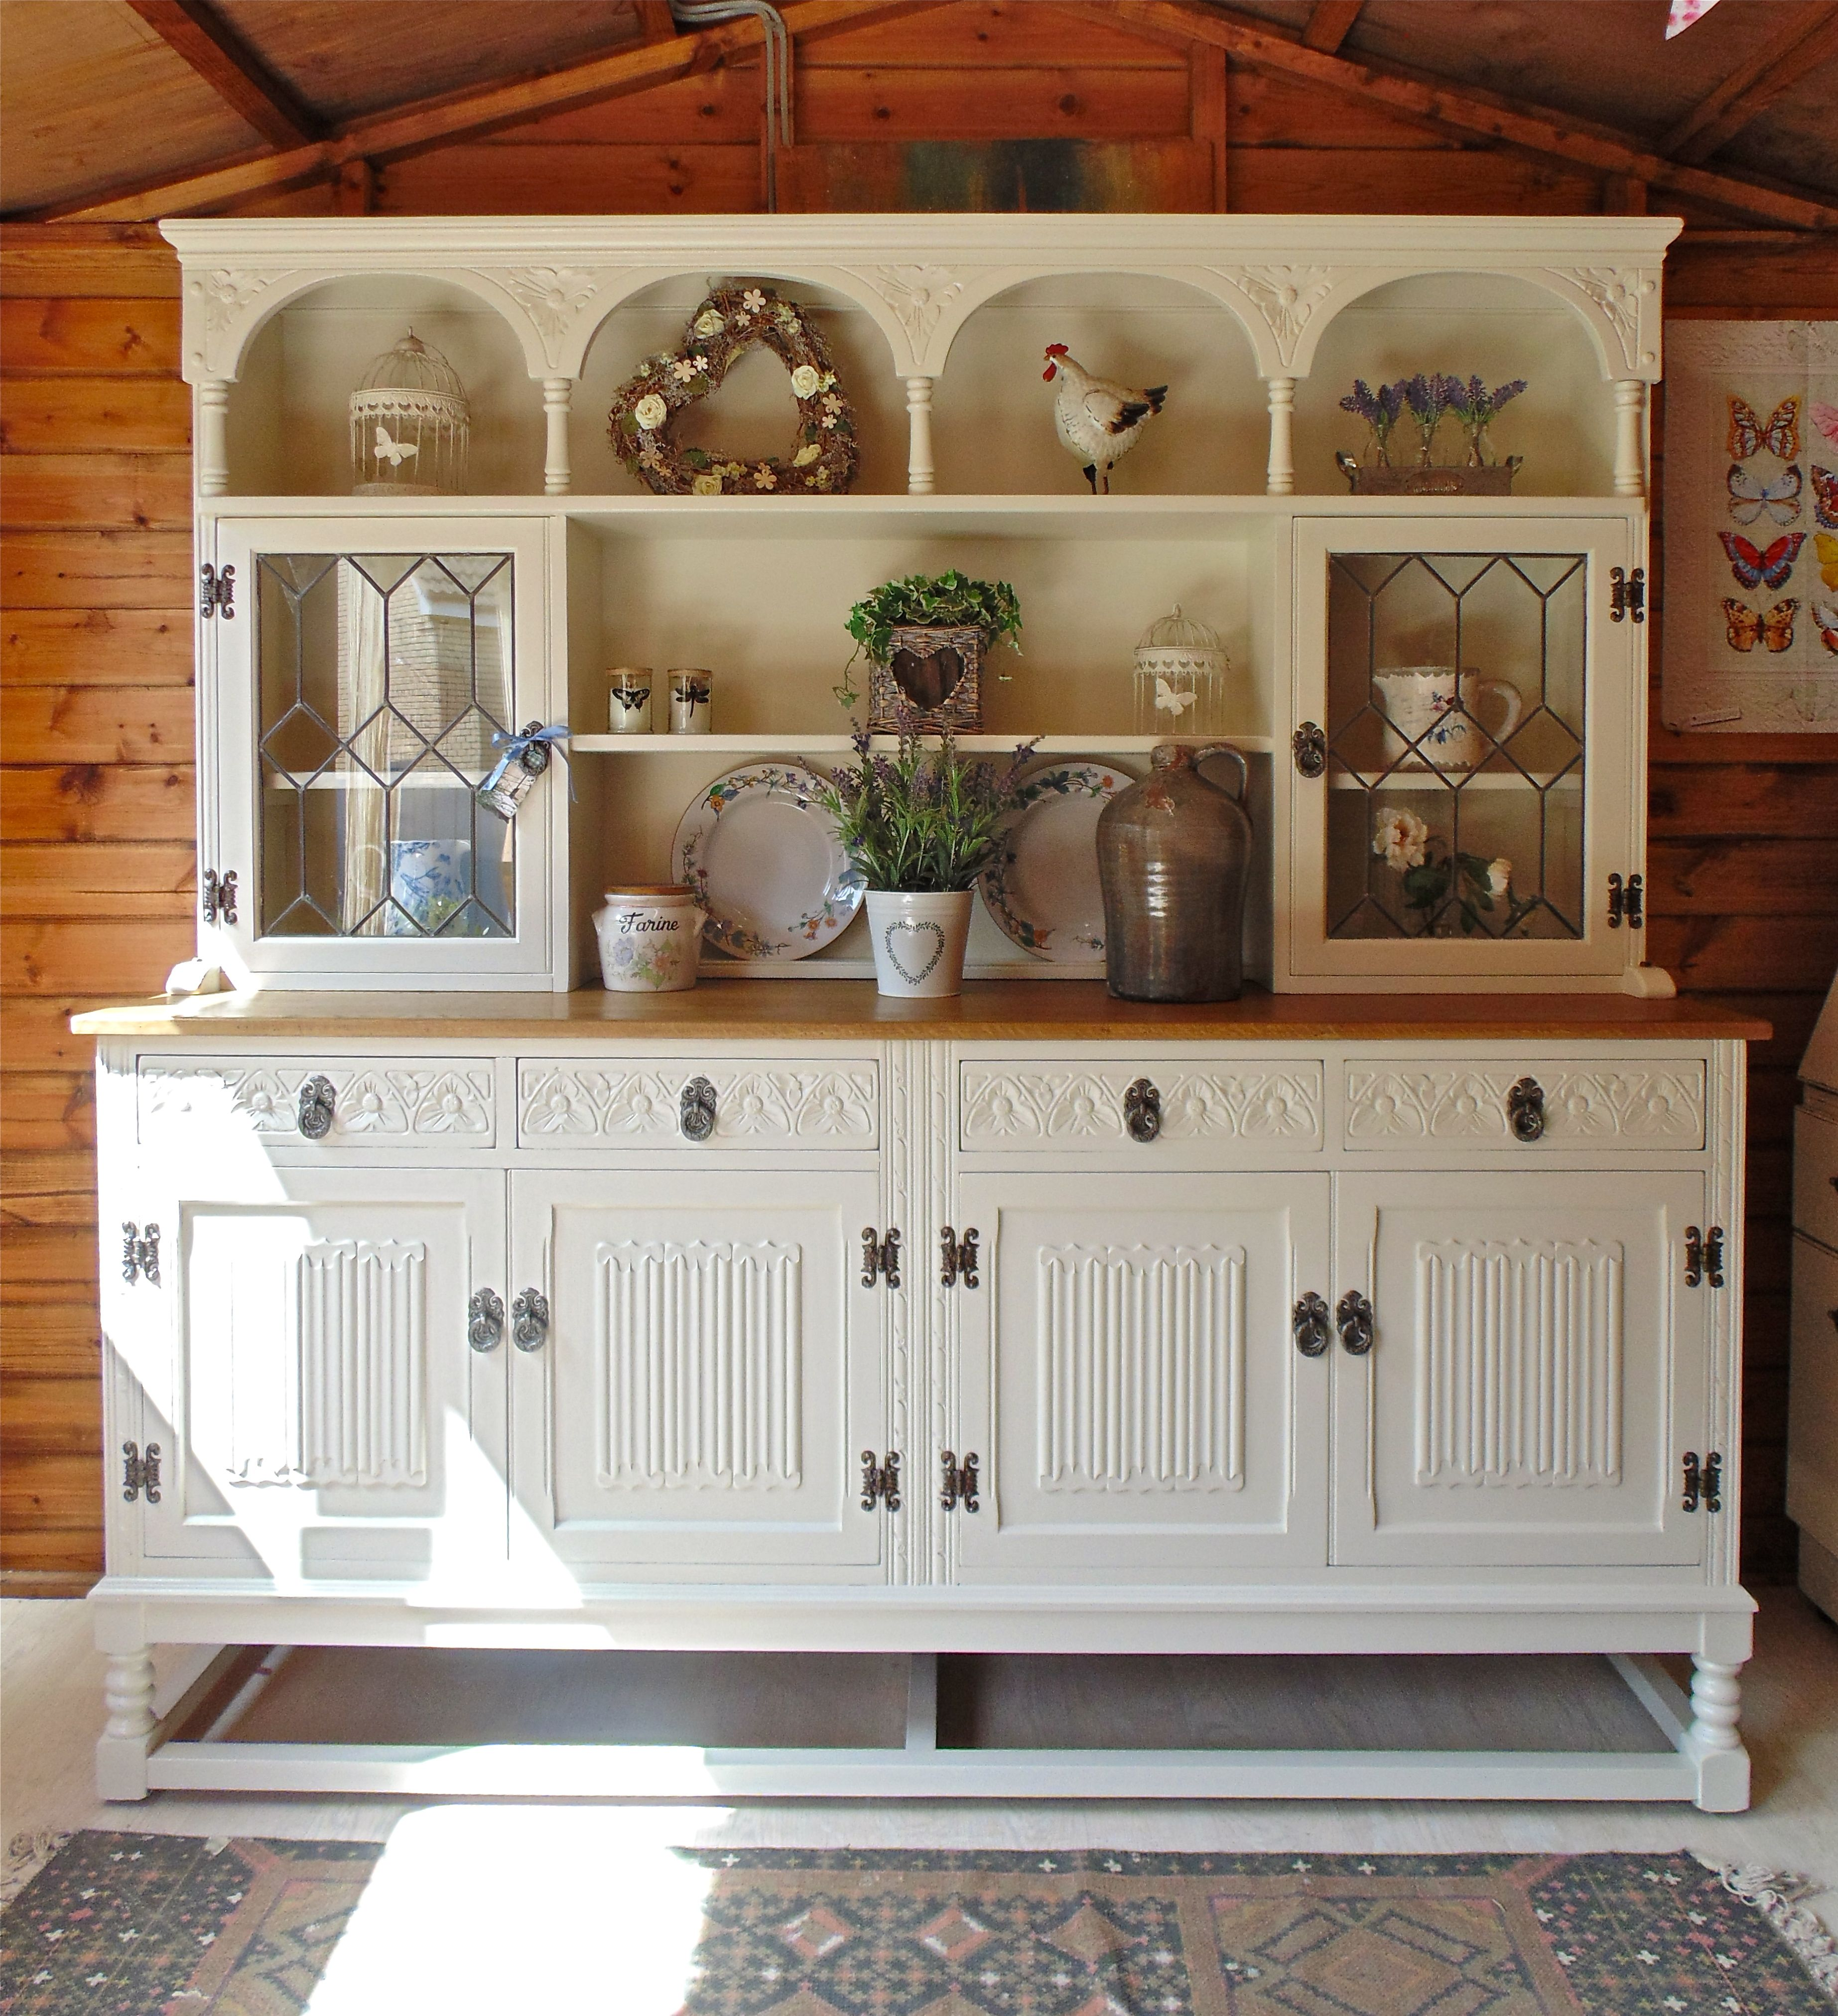 Large Old Charm Linenfold Rose Dresser Given A New Lease Of Life